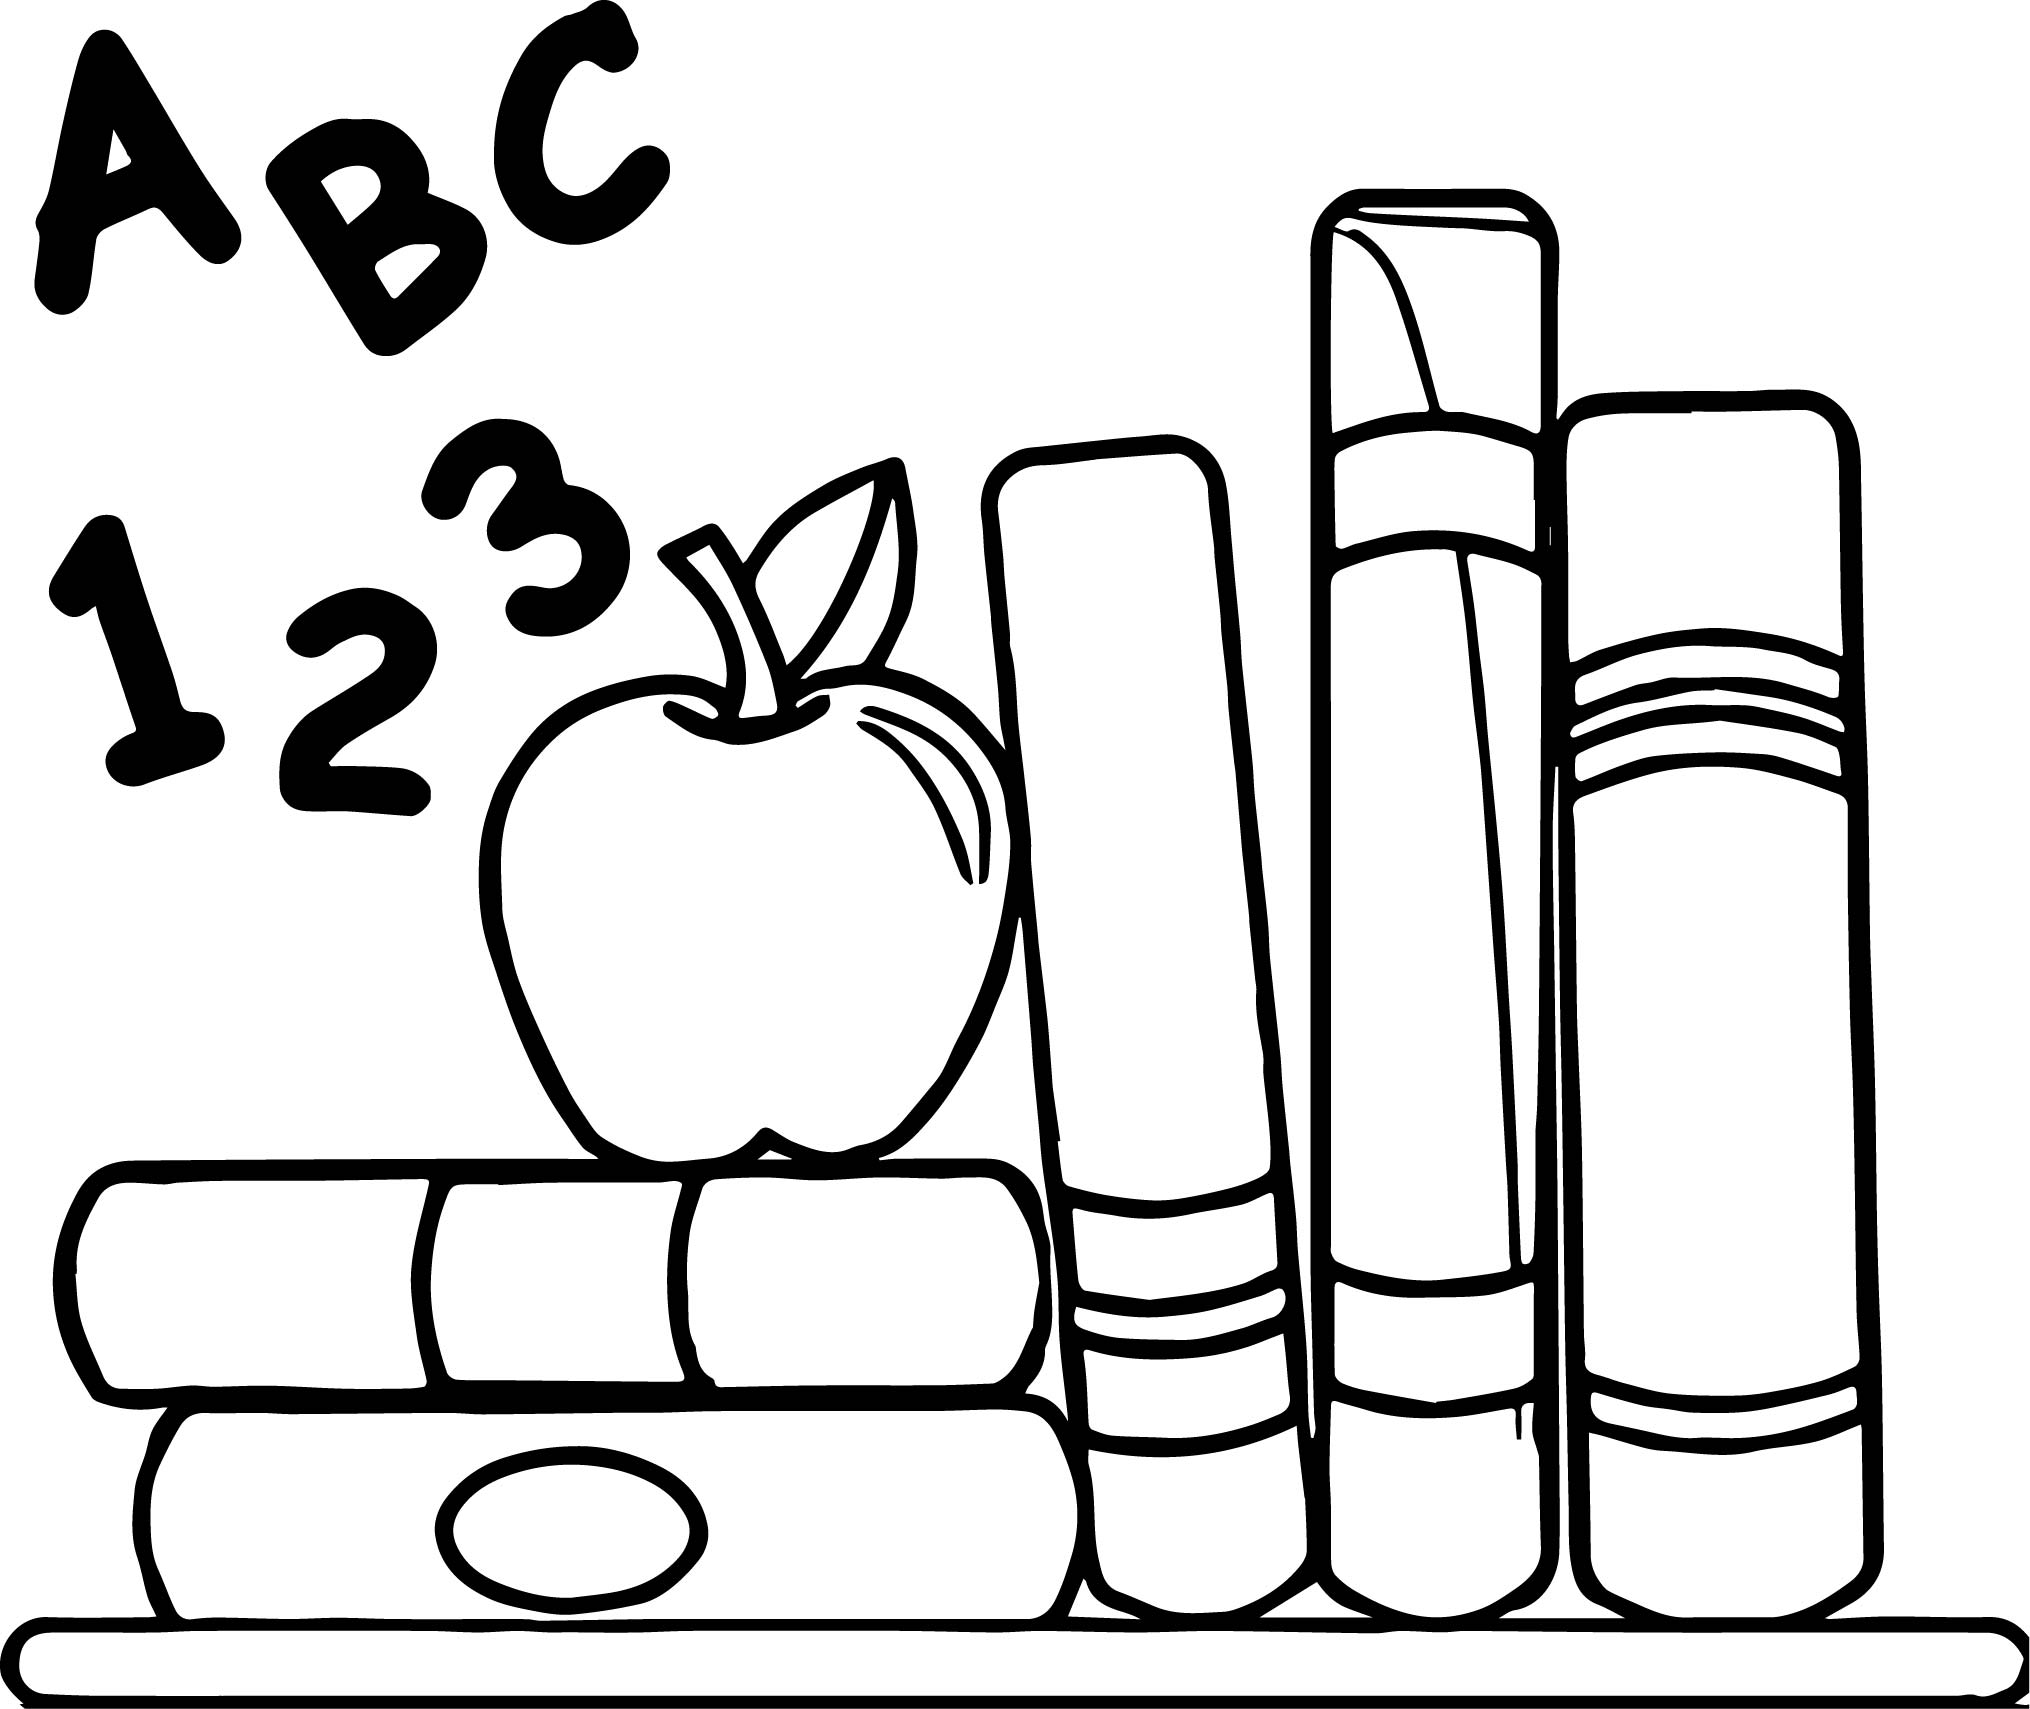 Art education teacher apple coloring page for Apple coloring pages